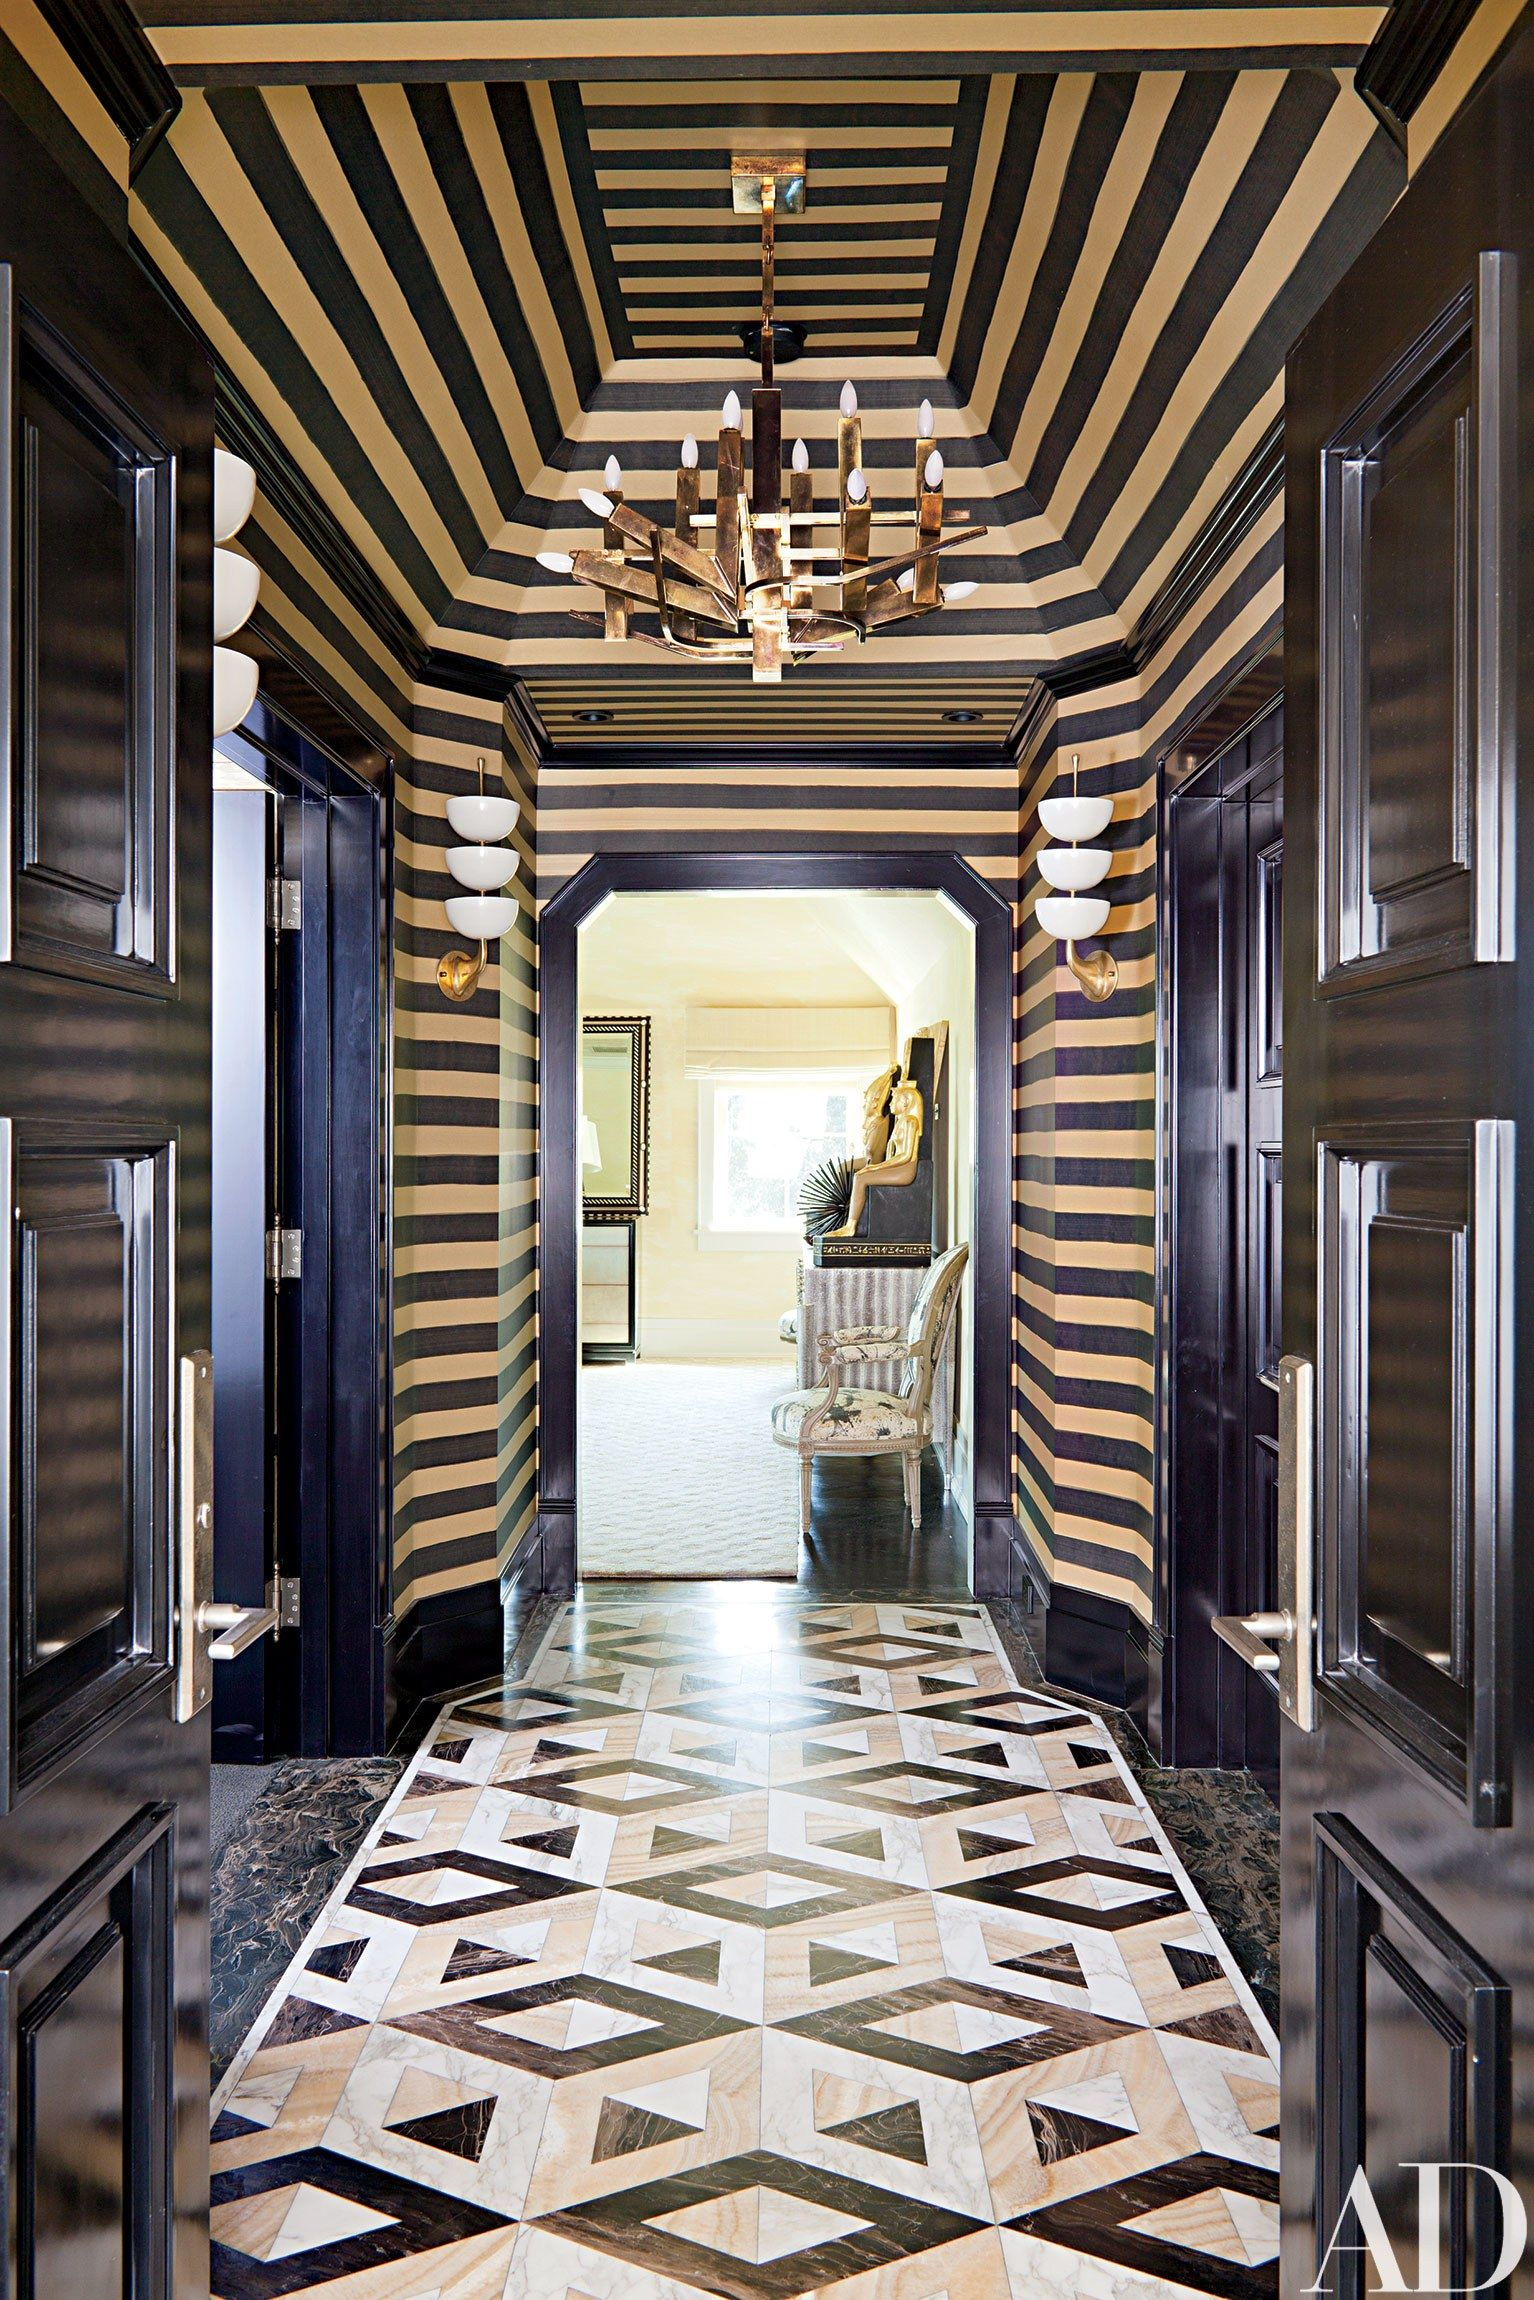 Kelly Wearstler Revamps an Eccentric Home in Bel Air | Interior favs ...